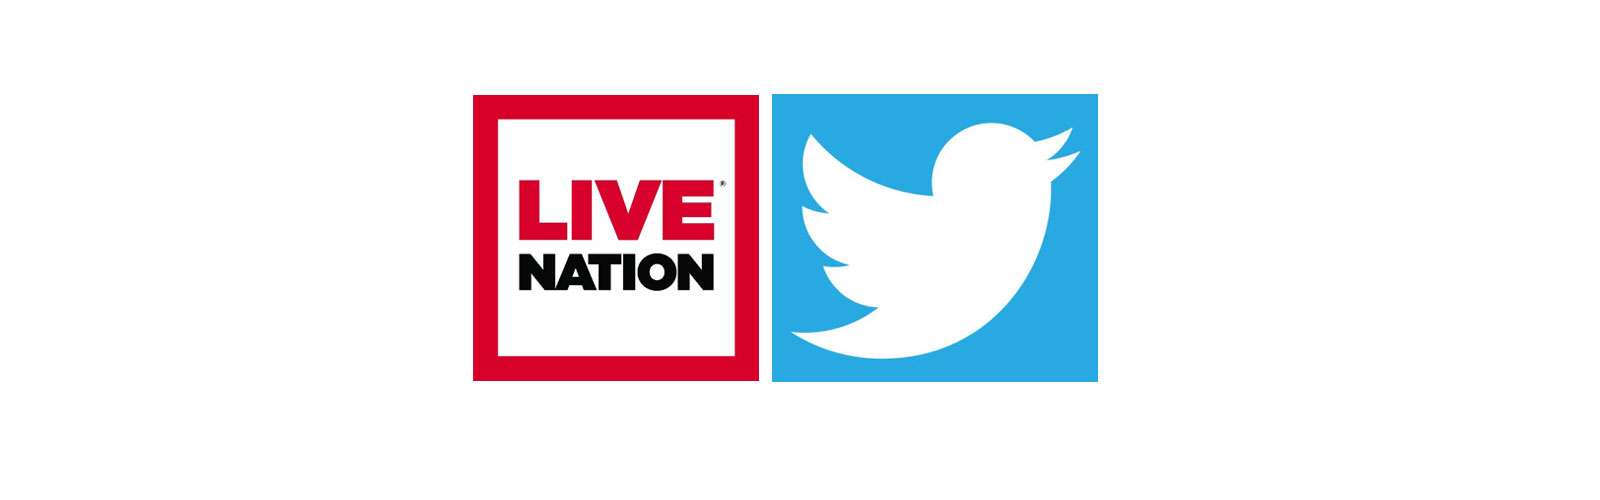 live-nation-twitter